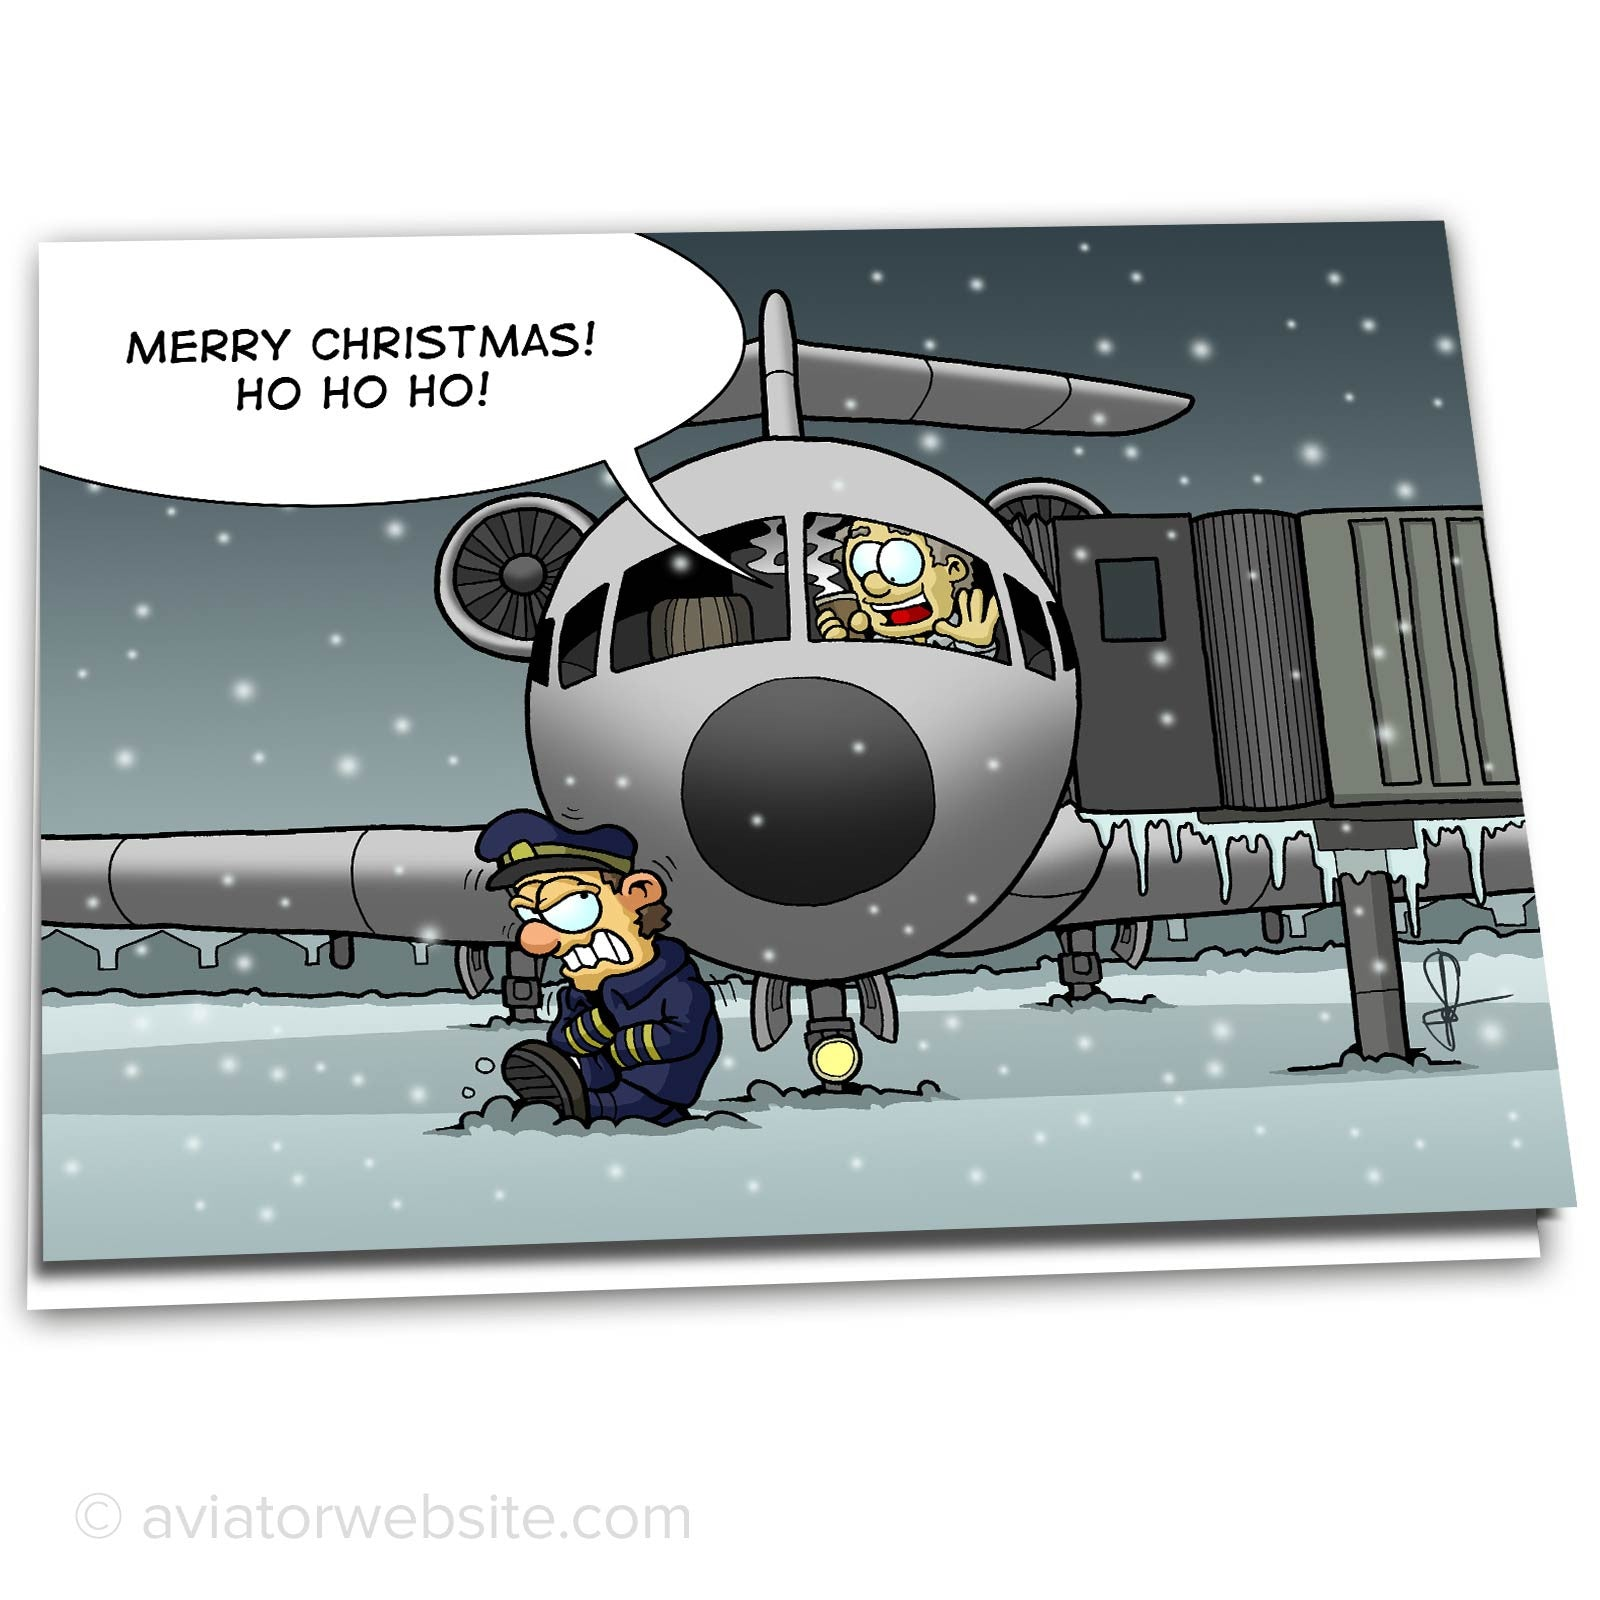 Aviation Christmas Cards For Pilots And Airplane Geeks Aviatorwebsite